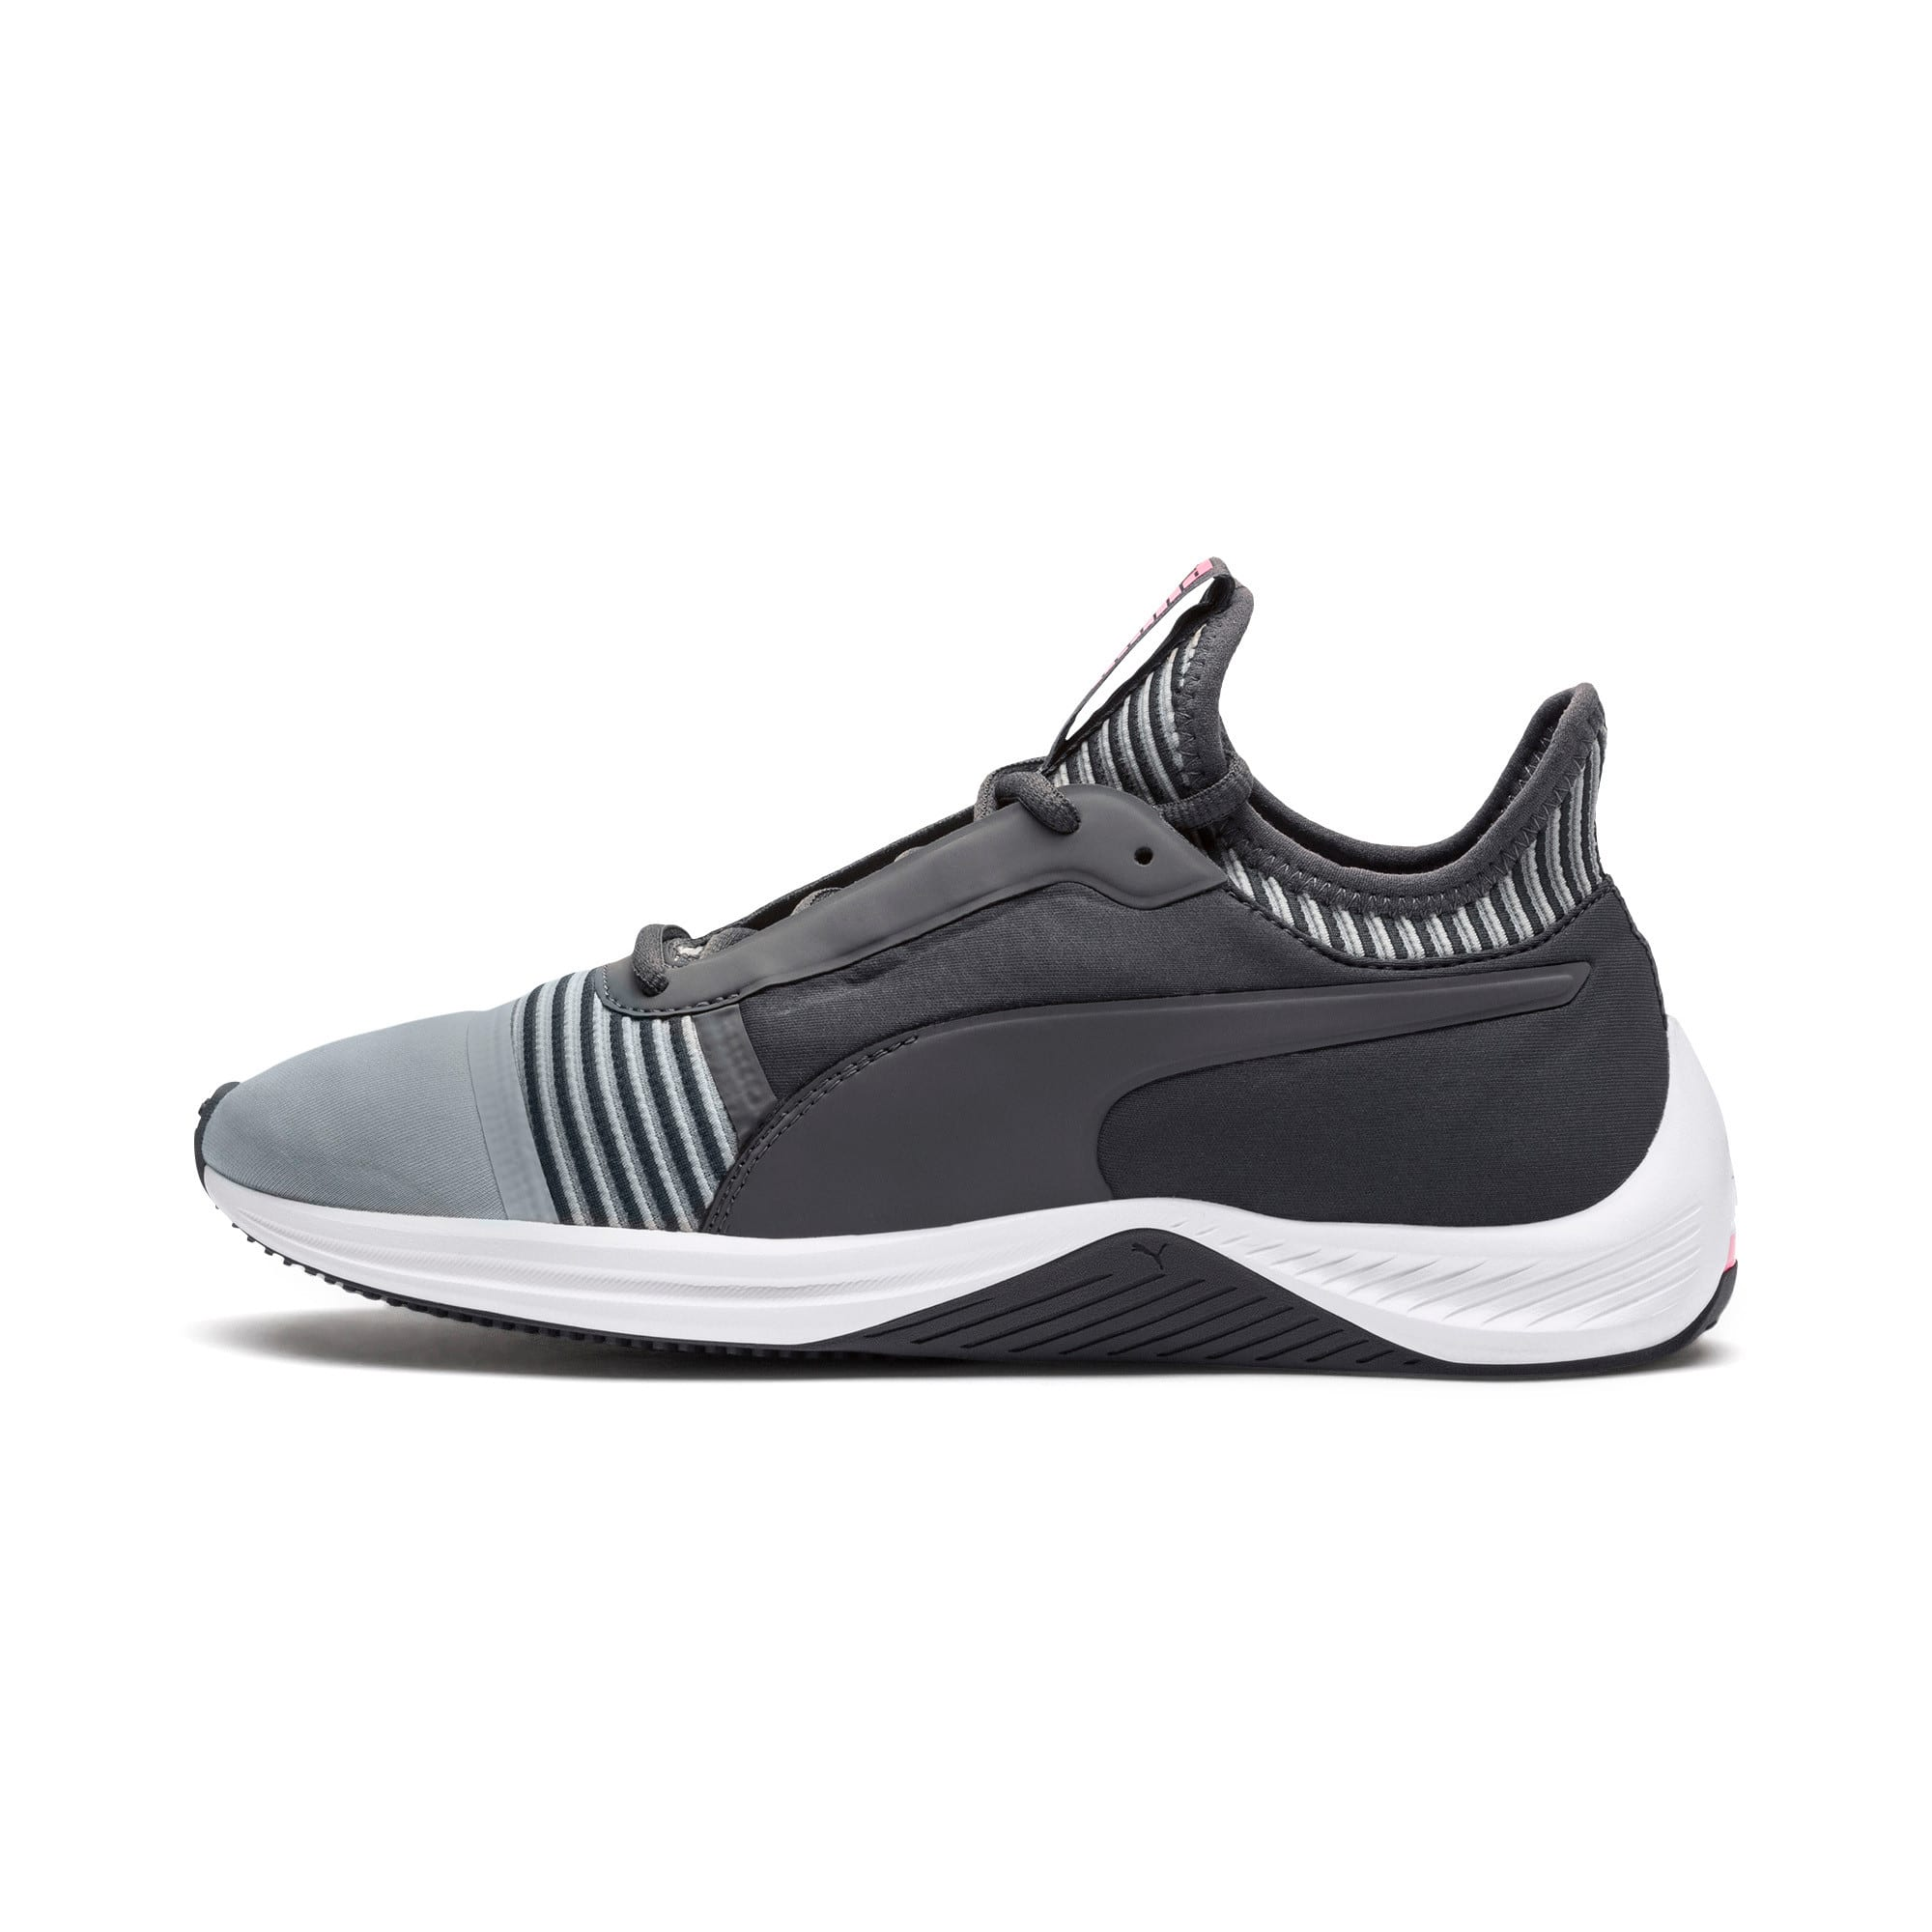 Thumbnail 1 of Amp XT Women's Training Shoes, Iron Gate-Quarry, medium